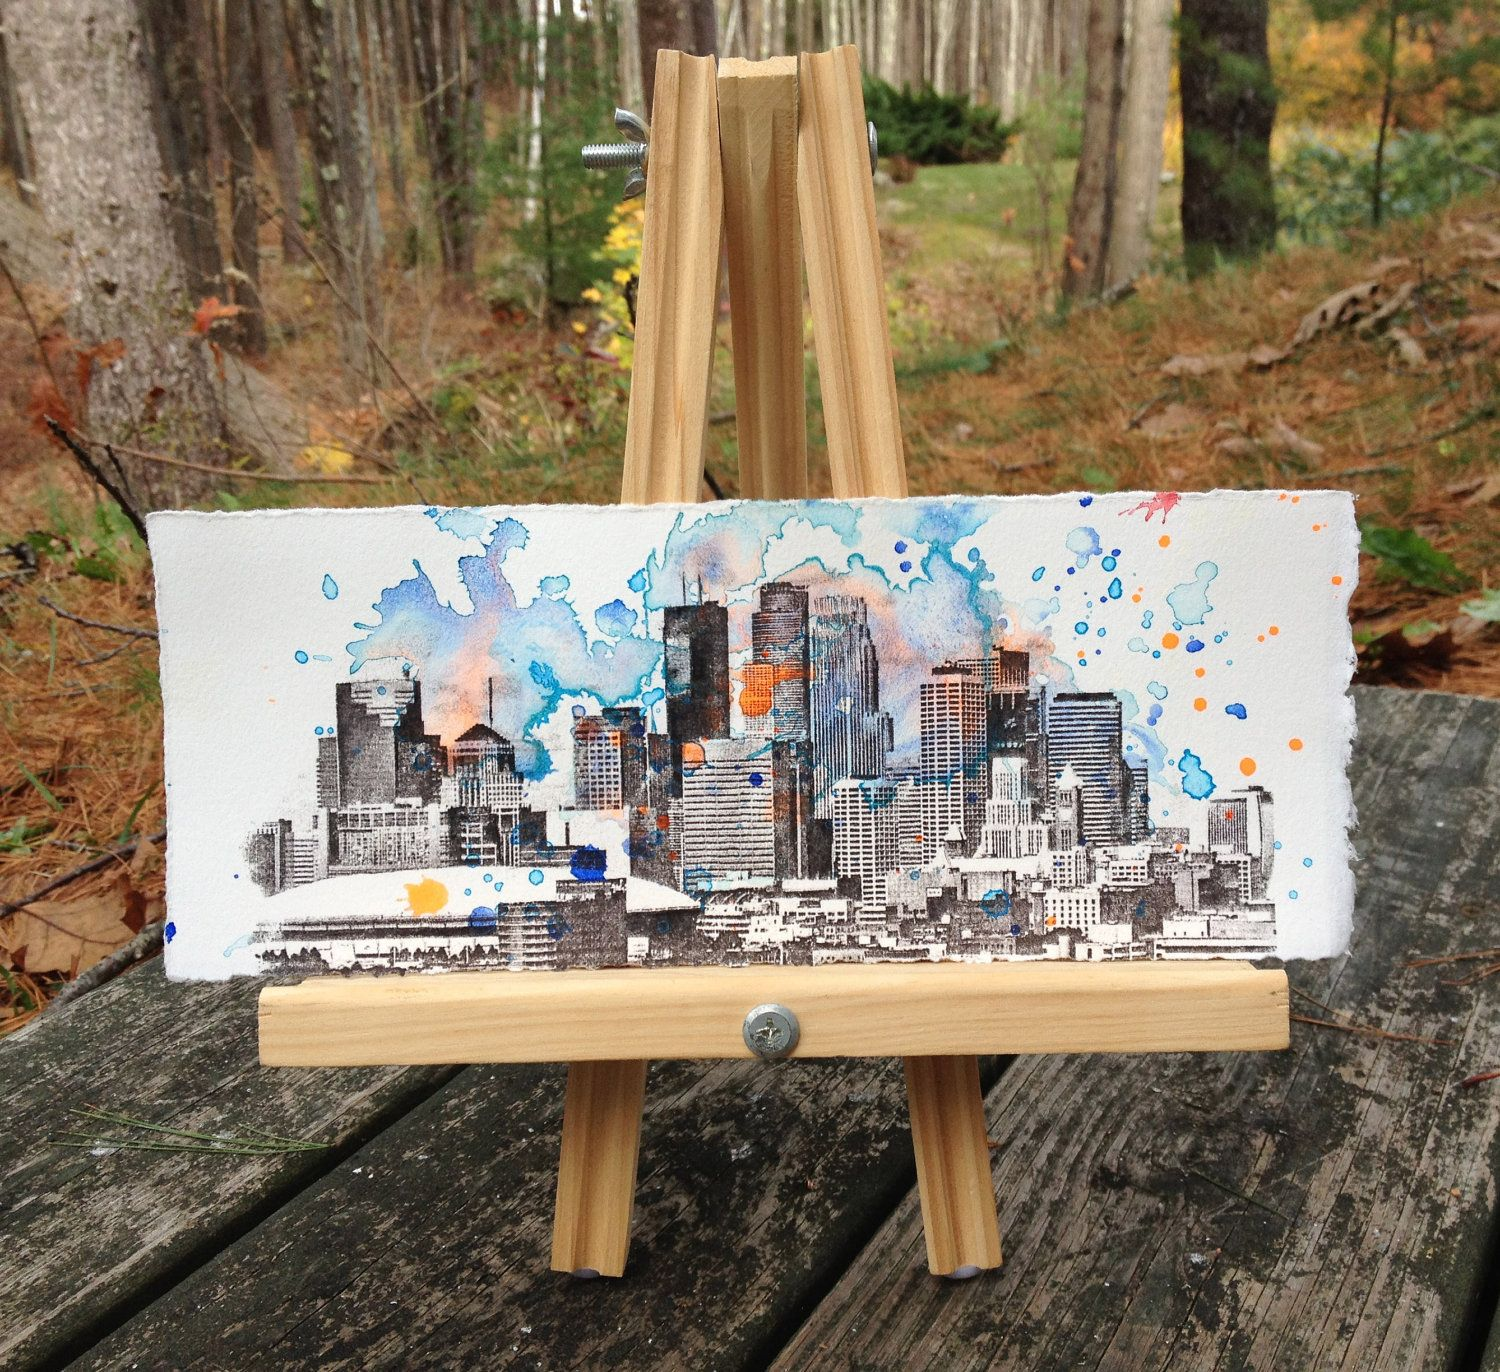 Minneapolis Minnesota Cityscape Skyline Landscape Painting - Original 11 X 4.5 in Watercolor Painting. $35.00, via Etsy.